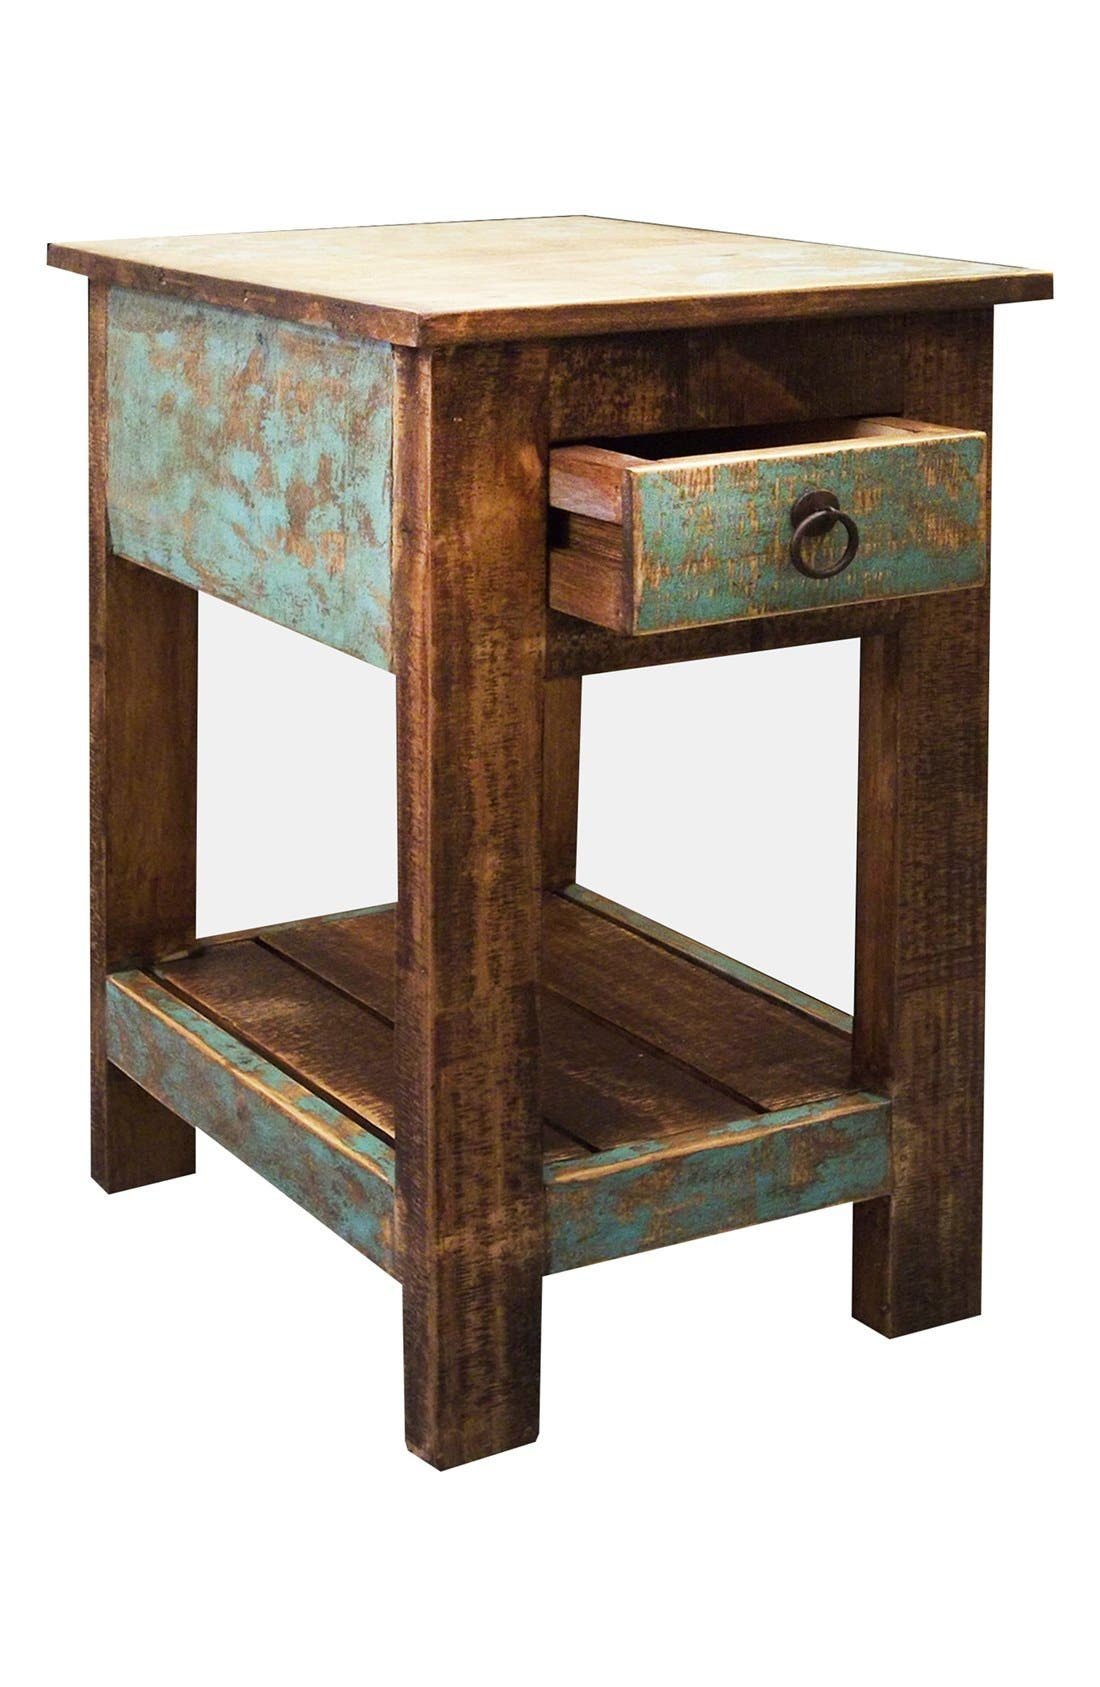 Main Image - Small Rustic Side Table